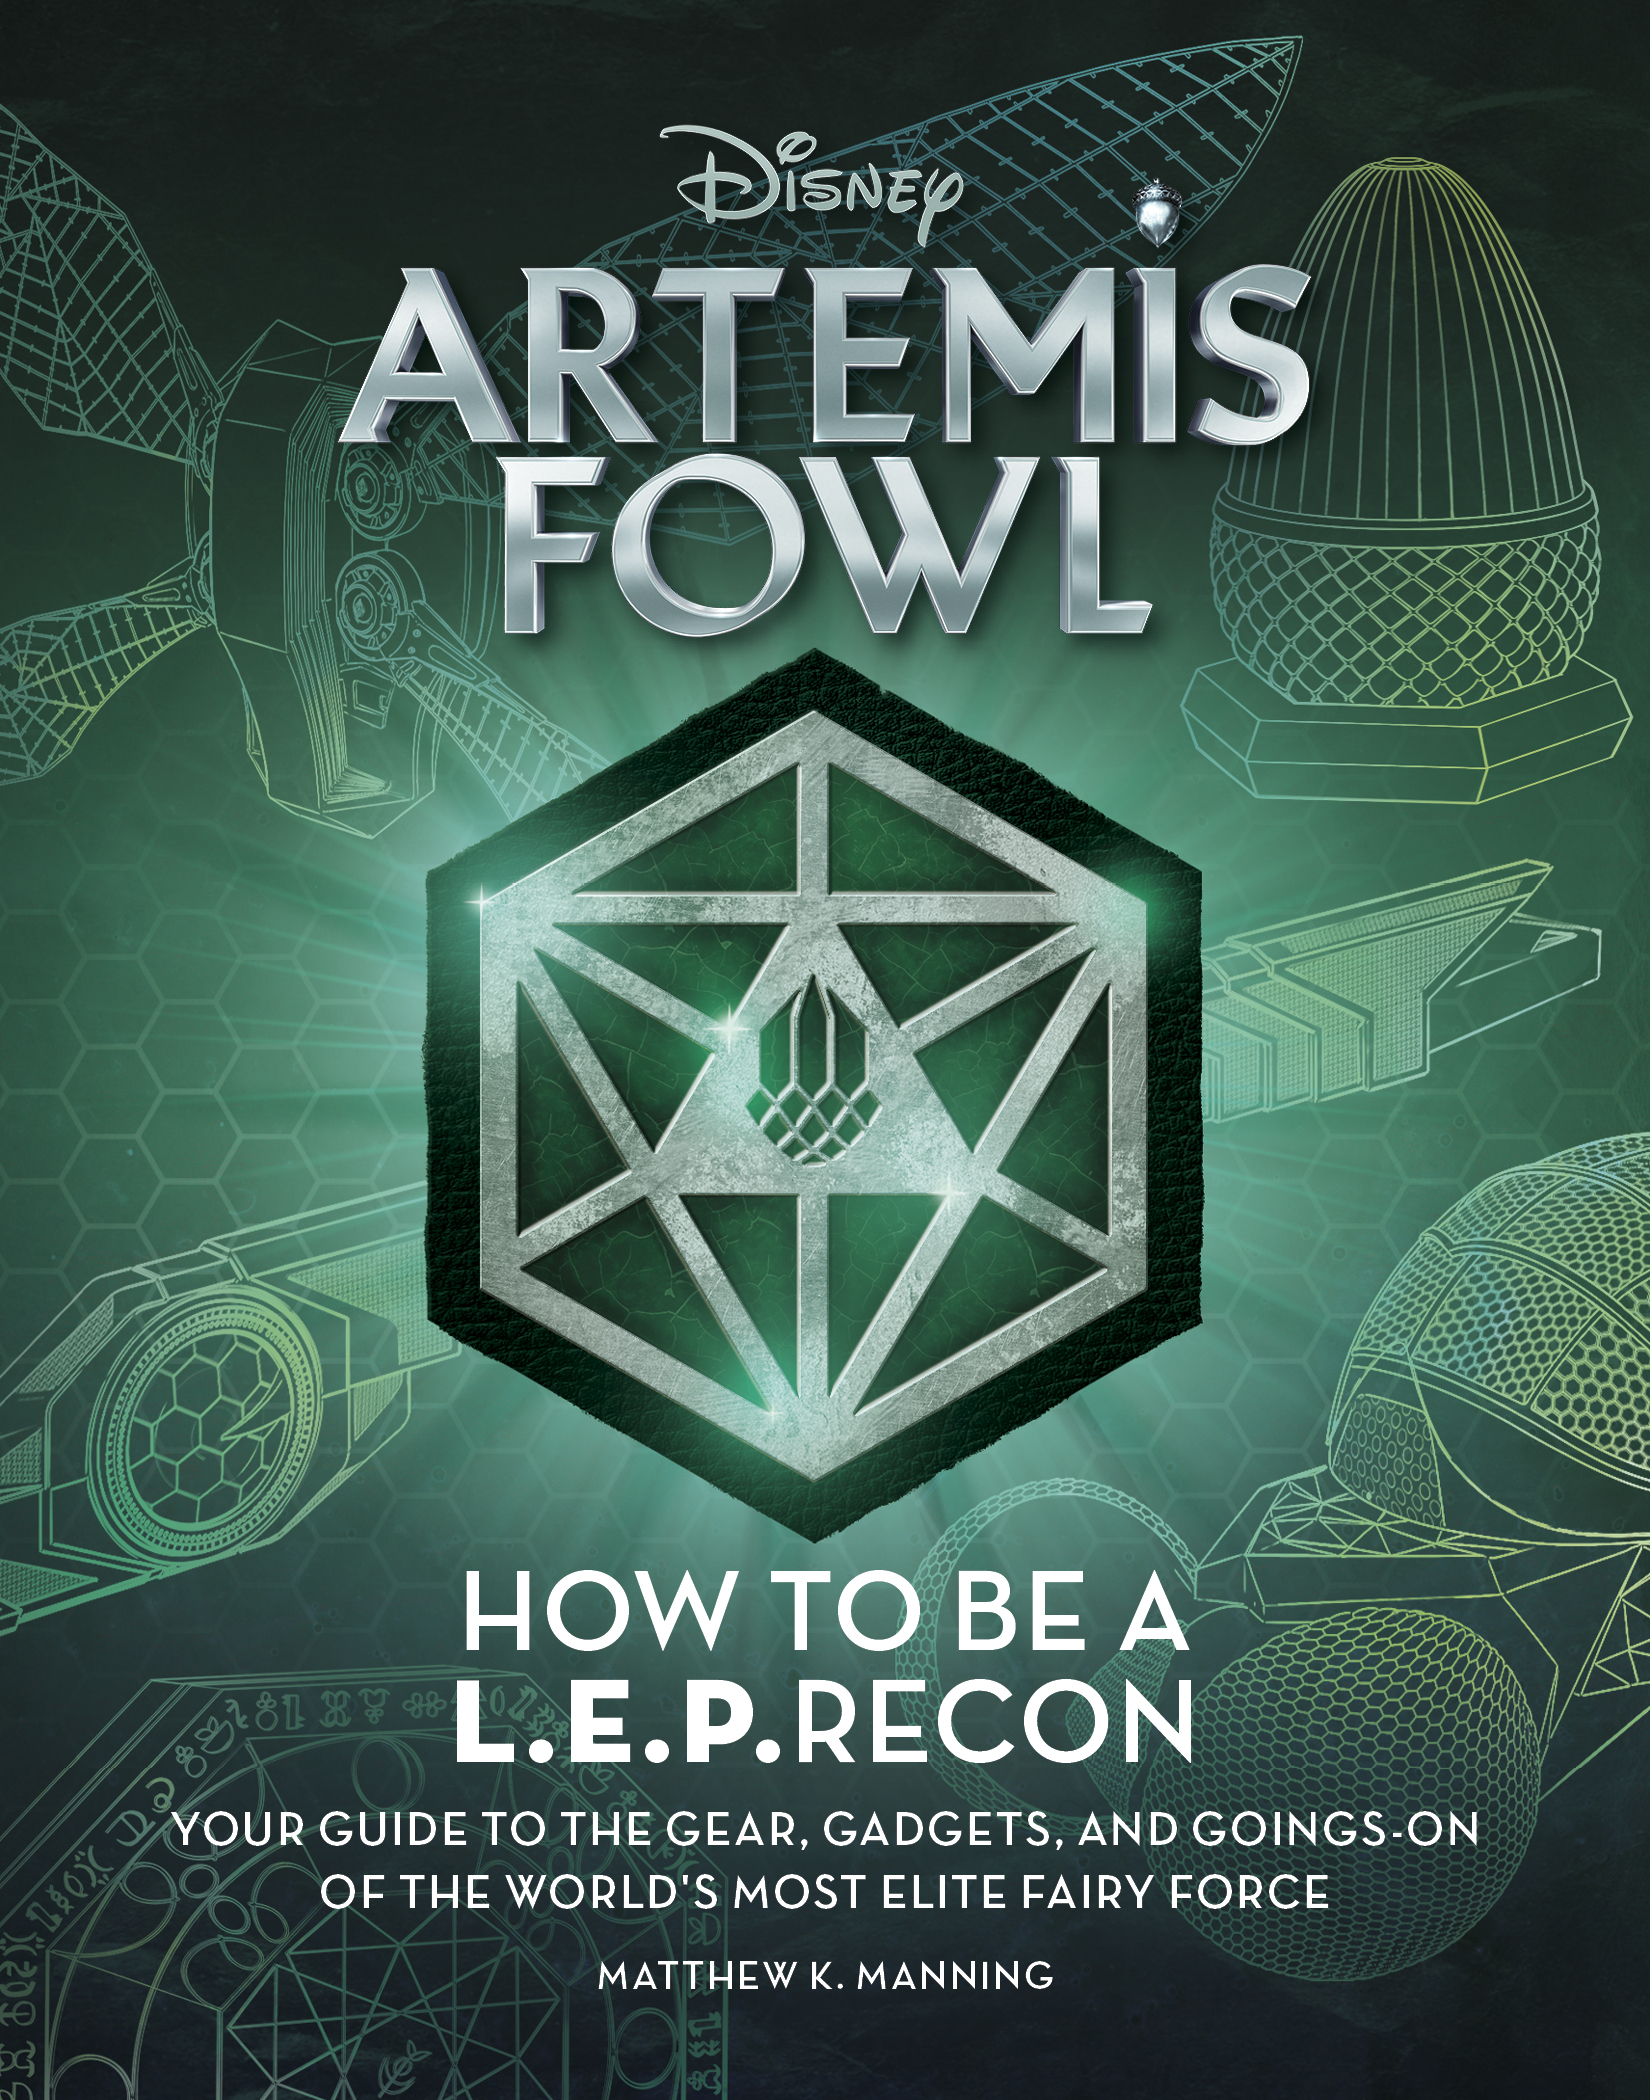 Artemis Fowl: Welcome to the LEP! Your Guide to the Gear, Gadgets, and Goings-on of the World's Most Elite Fairy Force